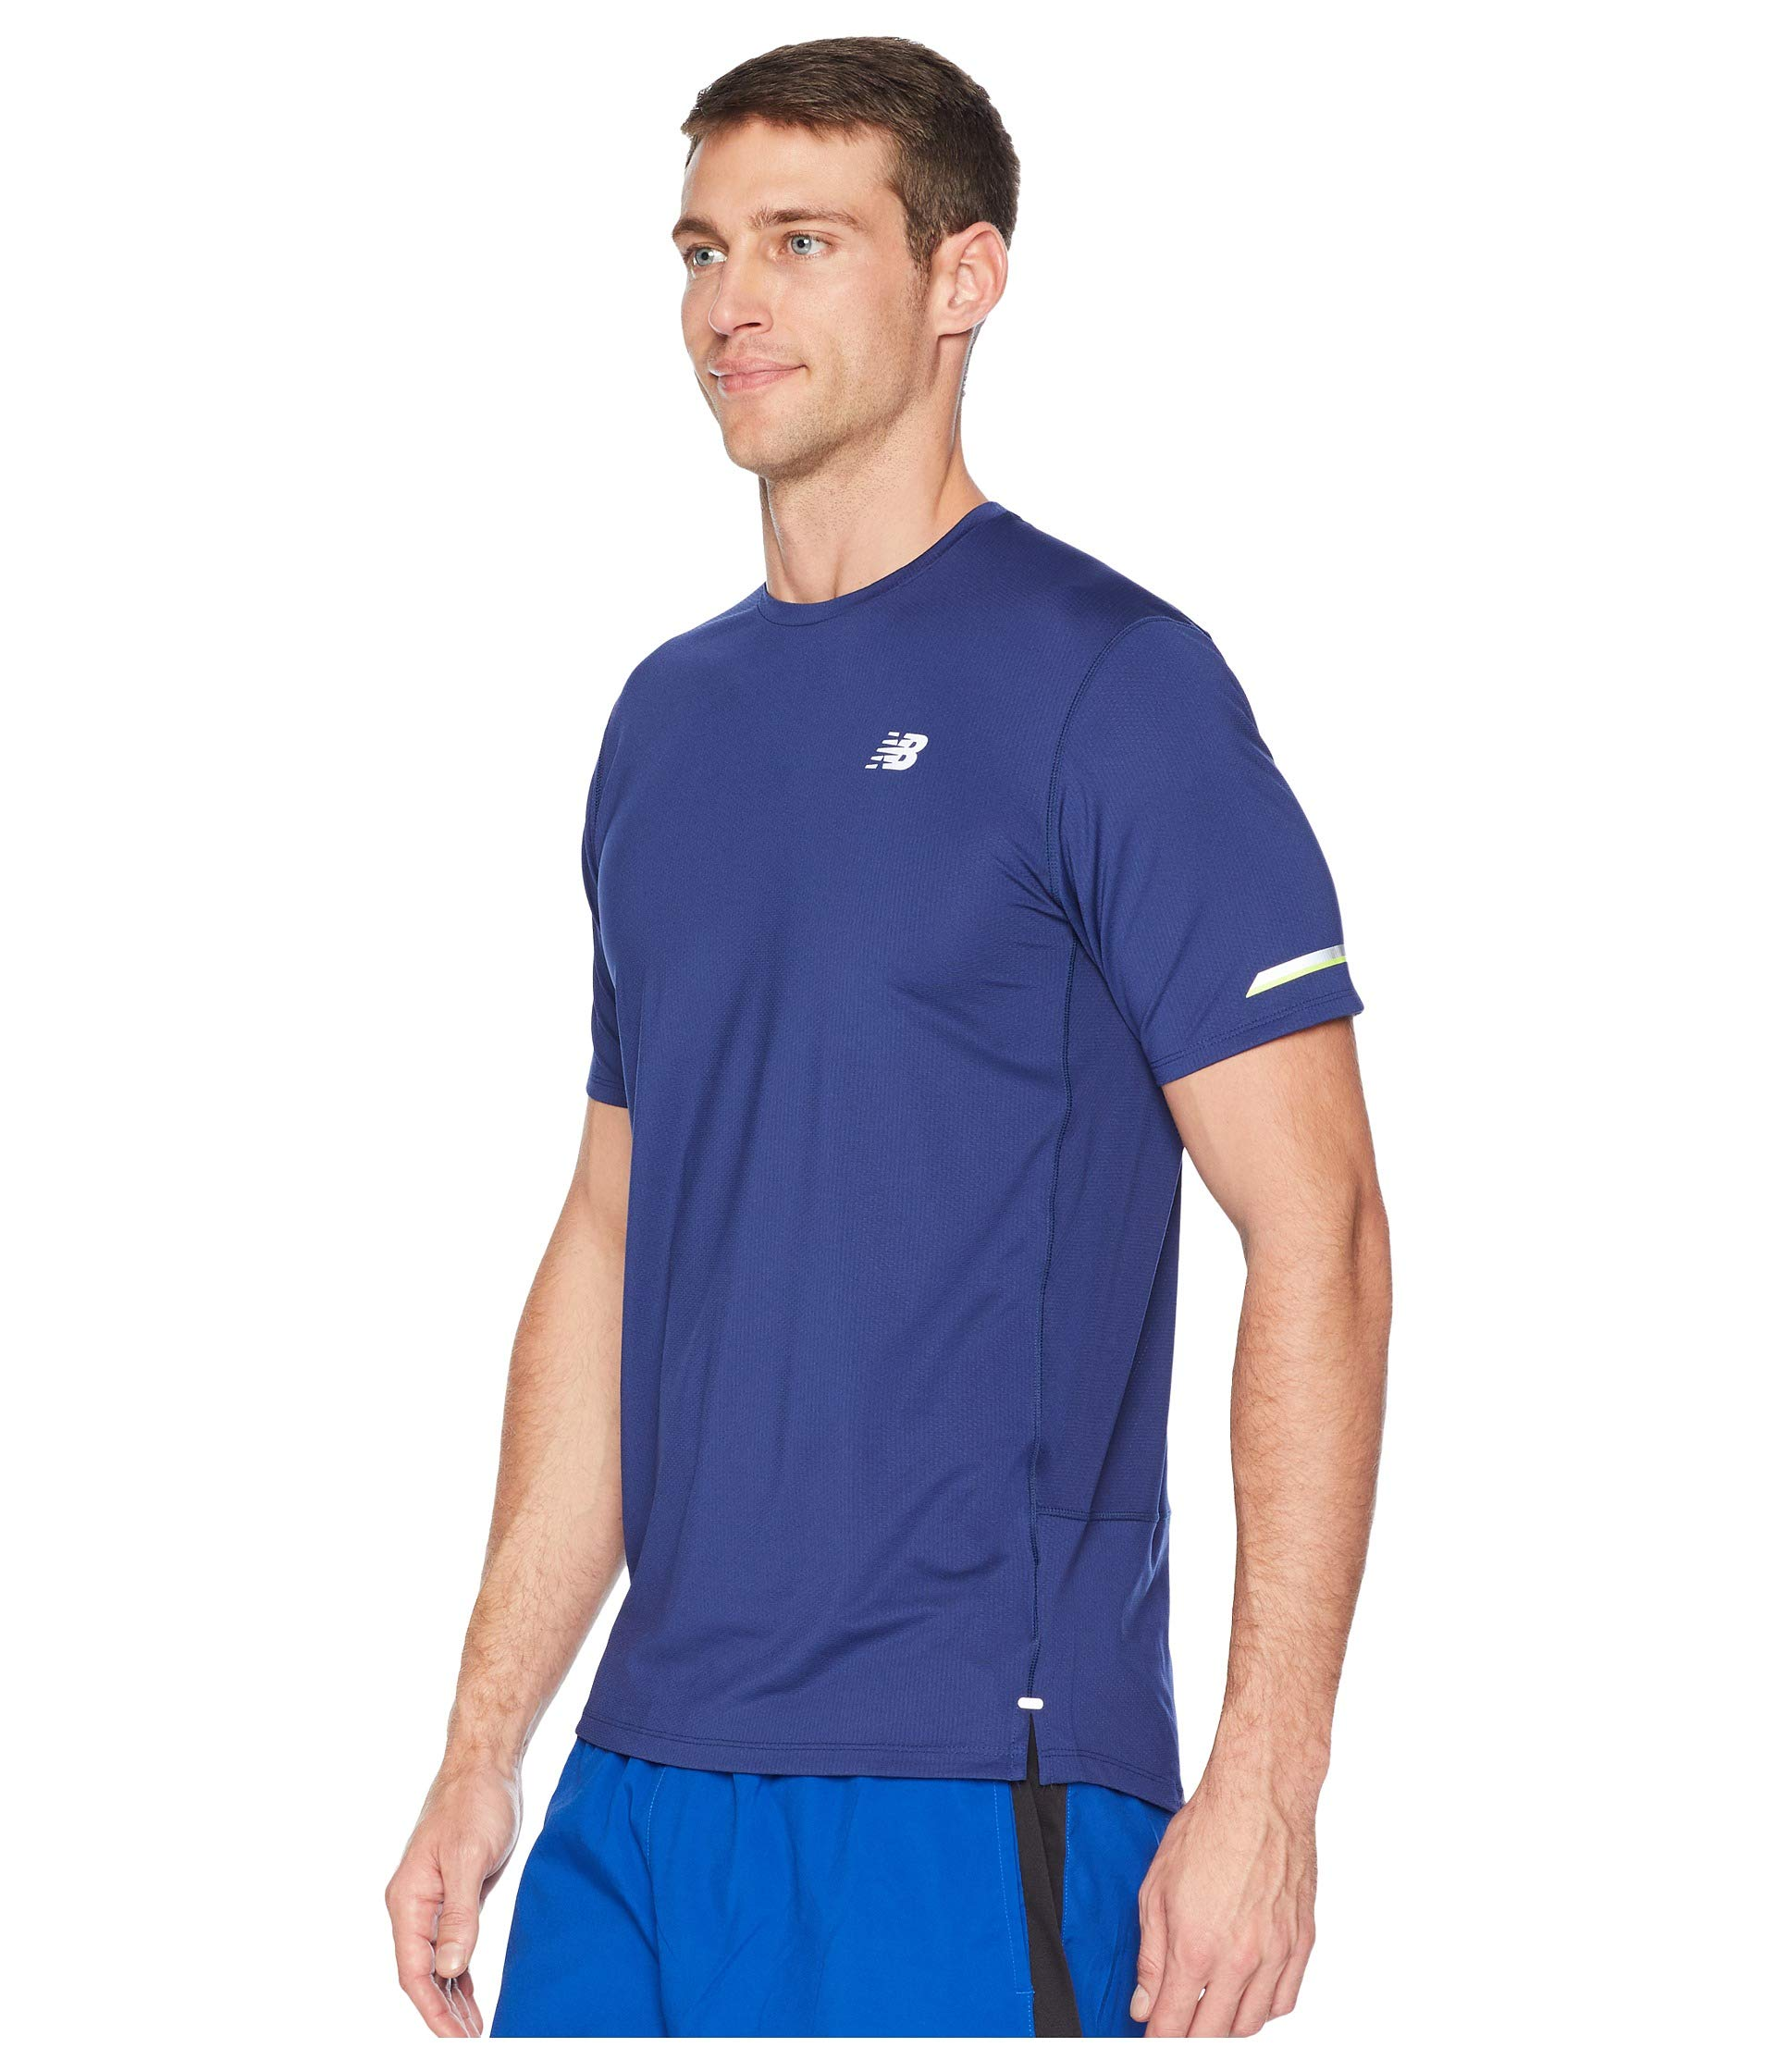 Sleeve New 2 Short Balance Techtonic Blue Ice 0 Nb Uqx4tqY